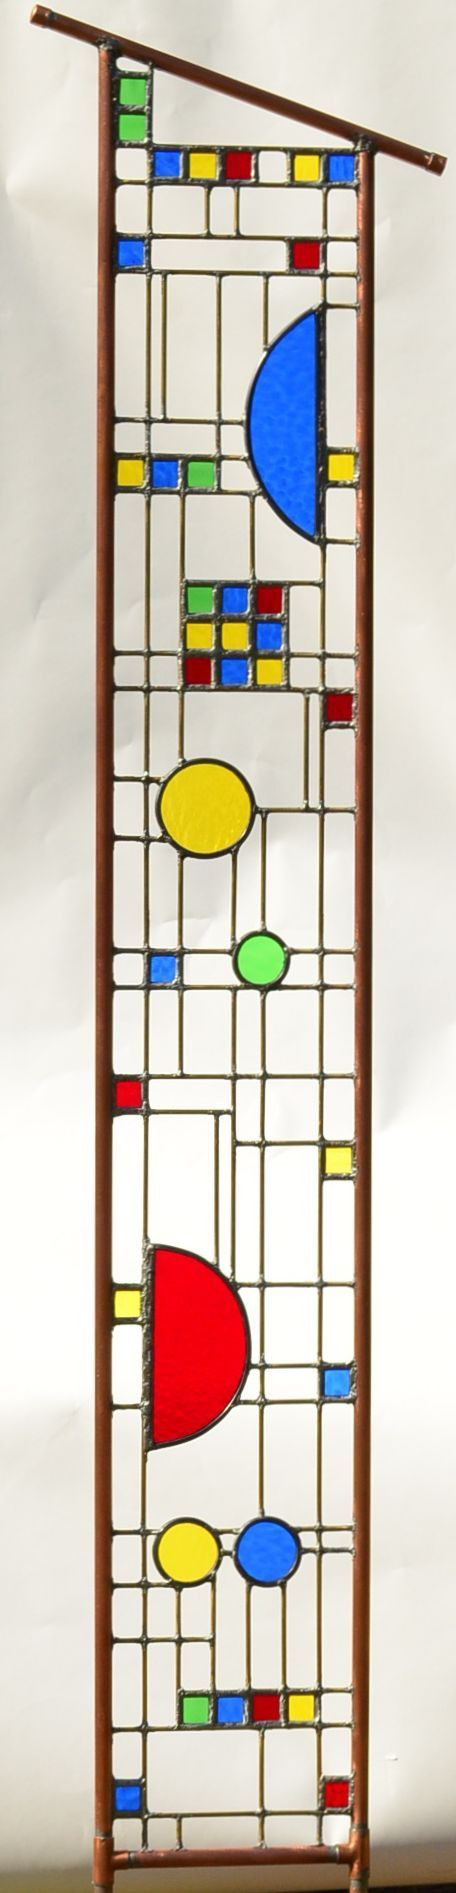 Large Garden Sculpture - Custom Stained Glass Art in the Arts and Crafts Style